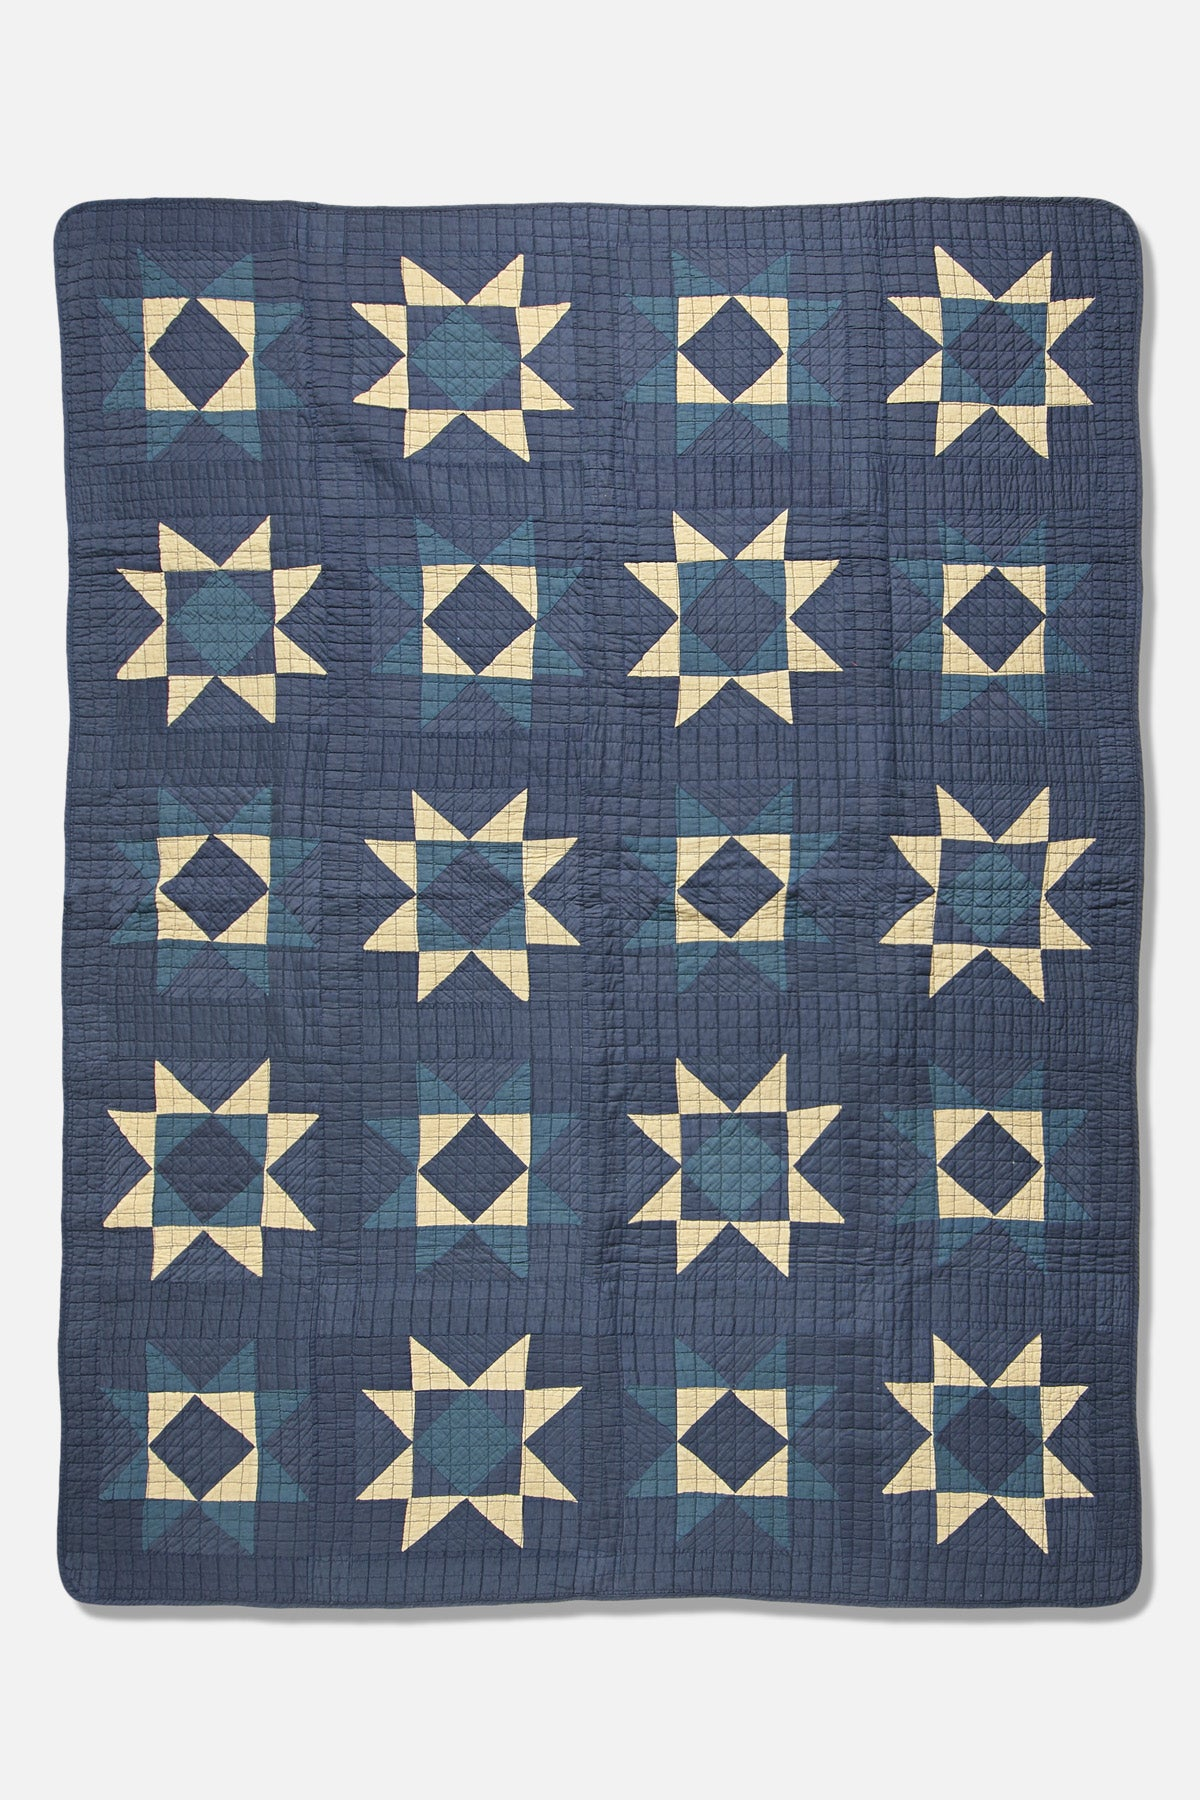 BasShu Patchwork Quilt in Blue - Fortune Goods